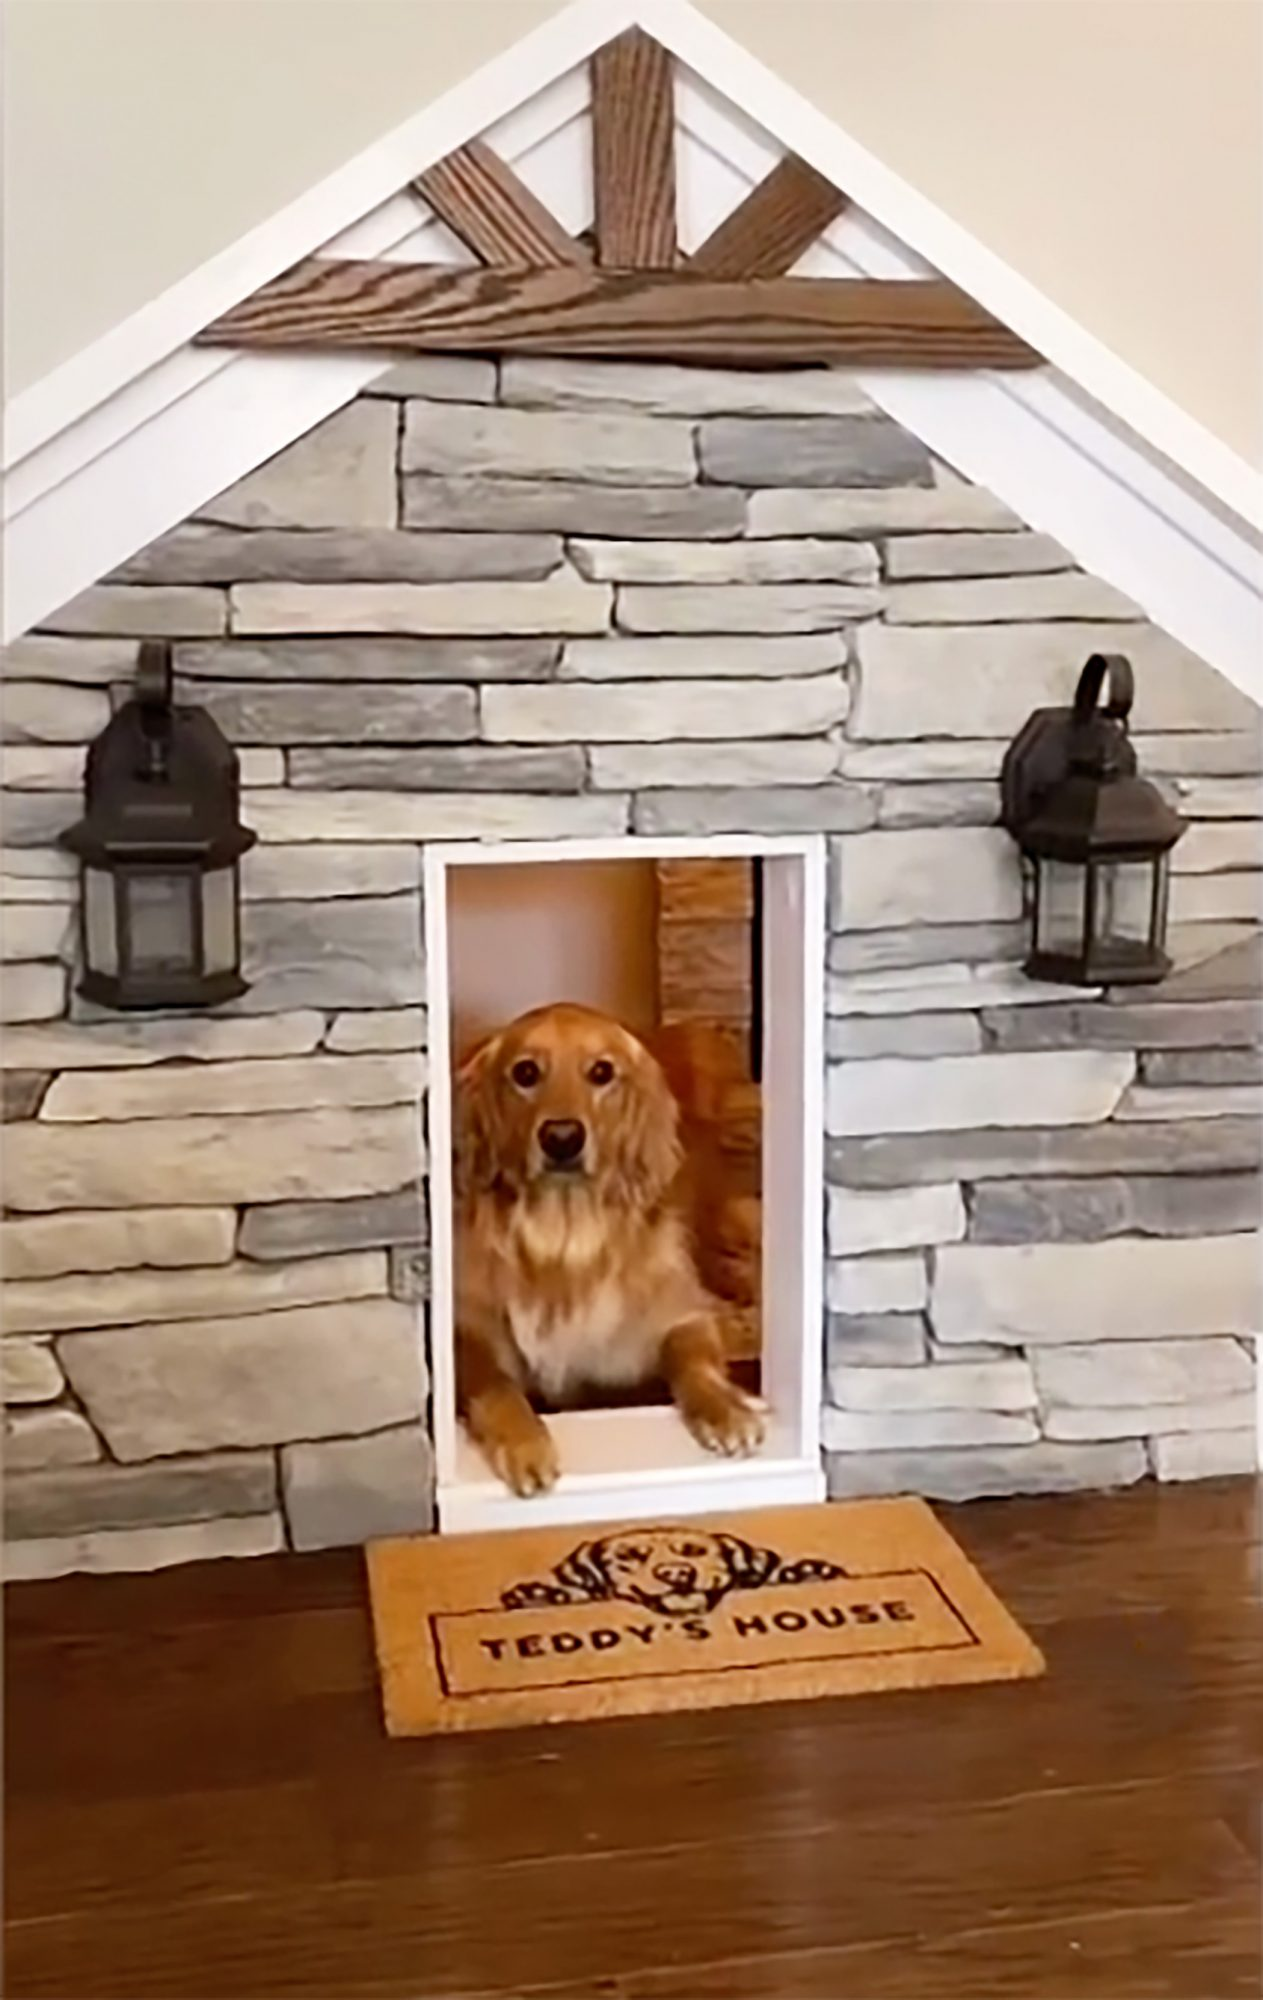 teddy in his dog house